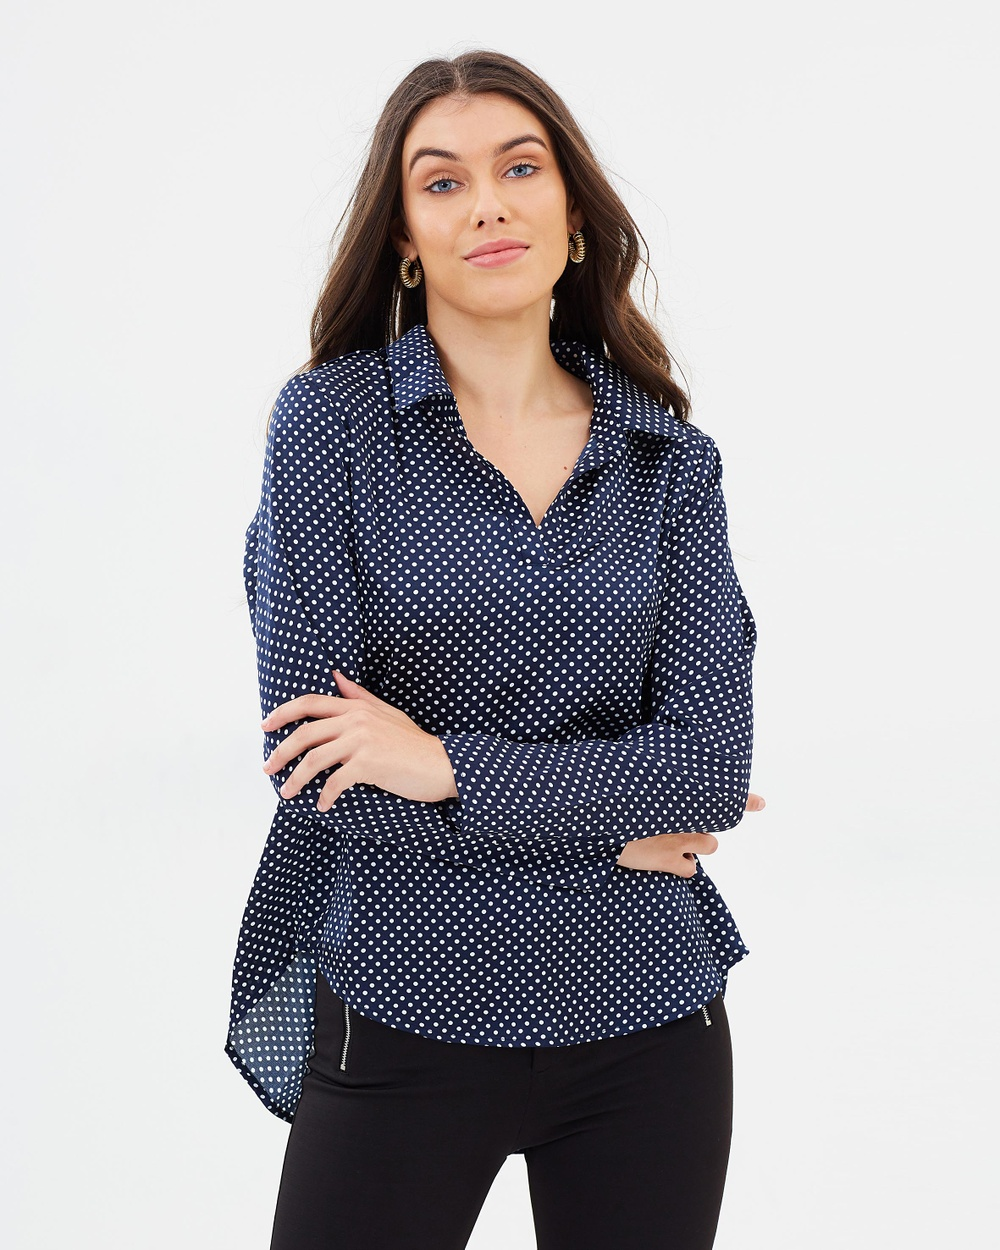 Atmos & Here ICONIC EXCLUSIVE Lindsy Collar Top Tops Navy Polka Dot ICONIC EXCLUSIVE Lindsy Collar Top